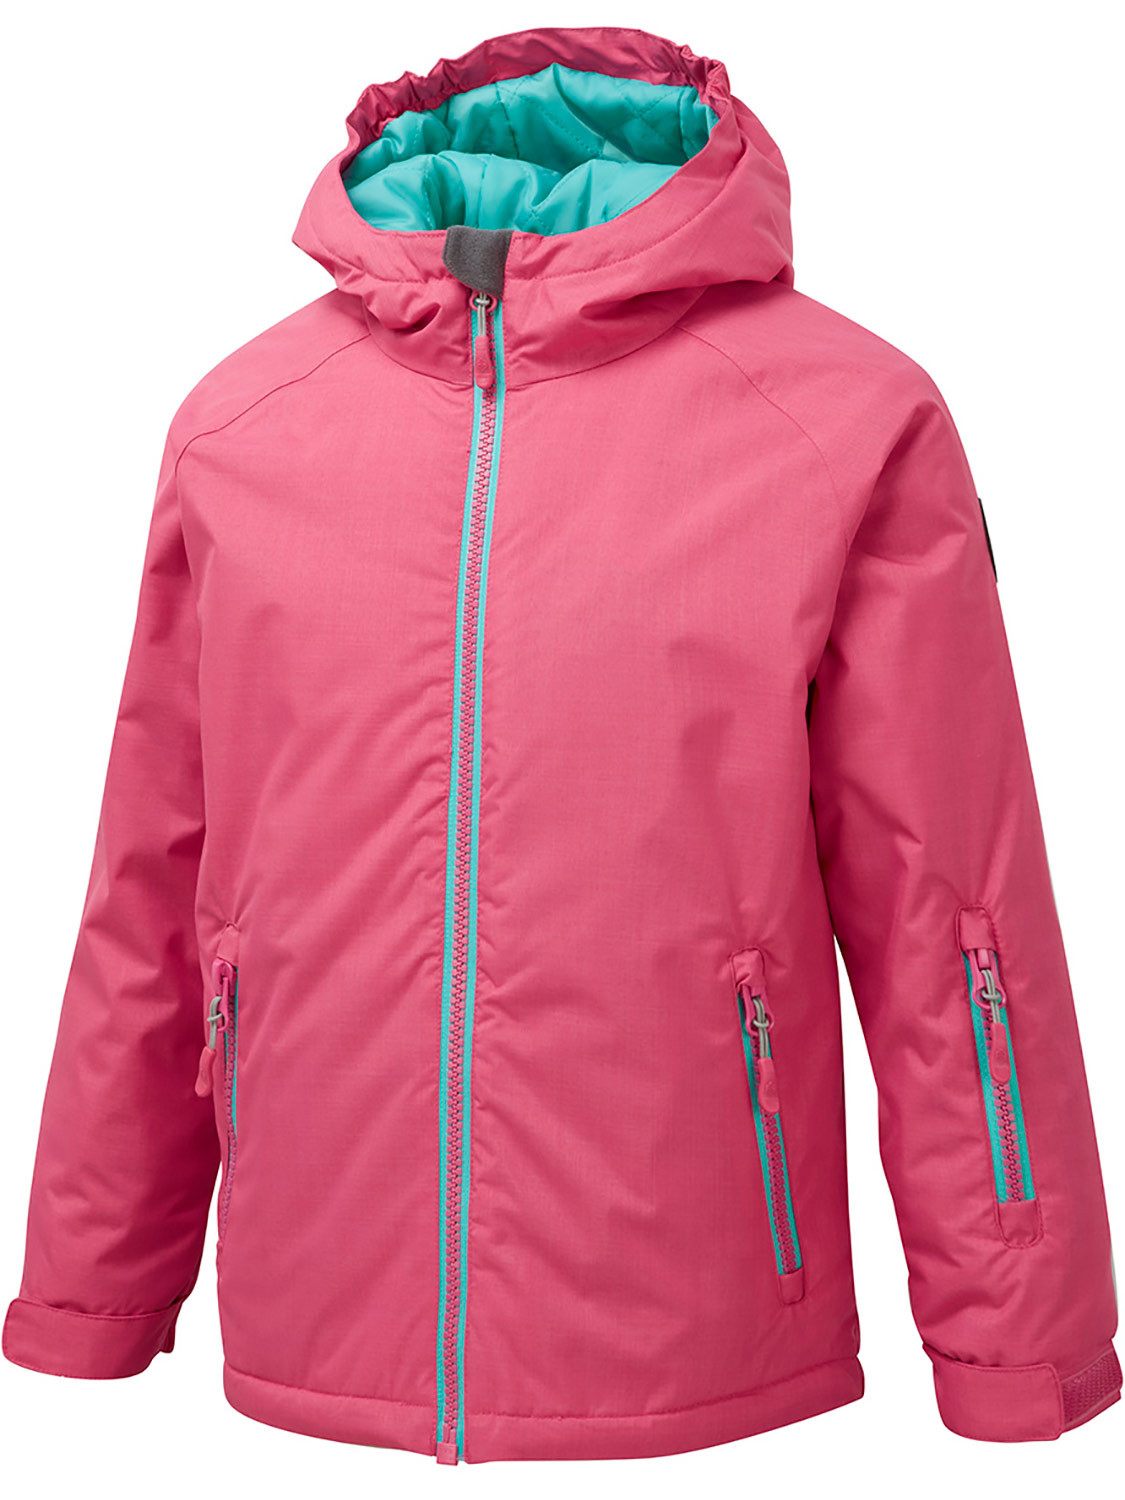 Bubbles Surftex Ski Jacket